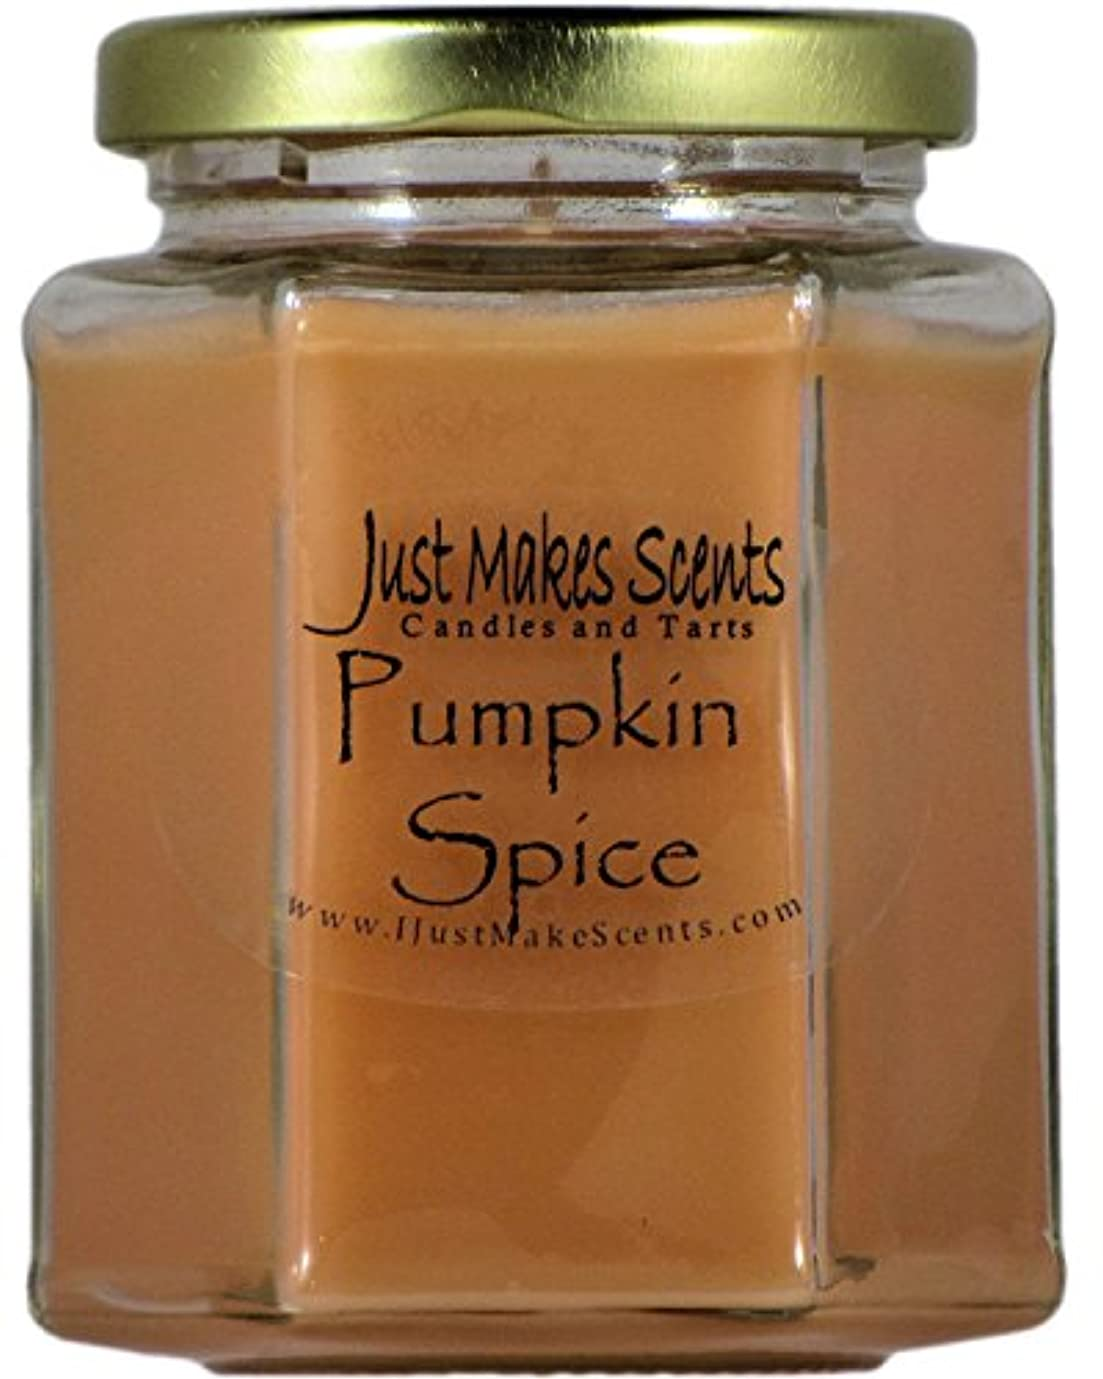 差し控える節約するオートマトンPumpkin Spice香りつきBlended Soy Candle | Great Smelling Fall Fragrance |手Poured in the USA by Just Makes Scents